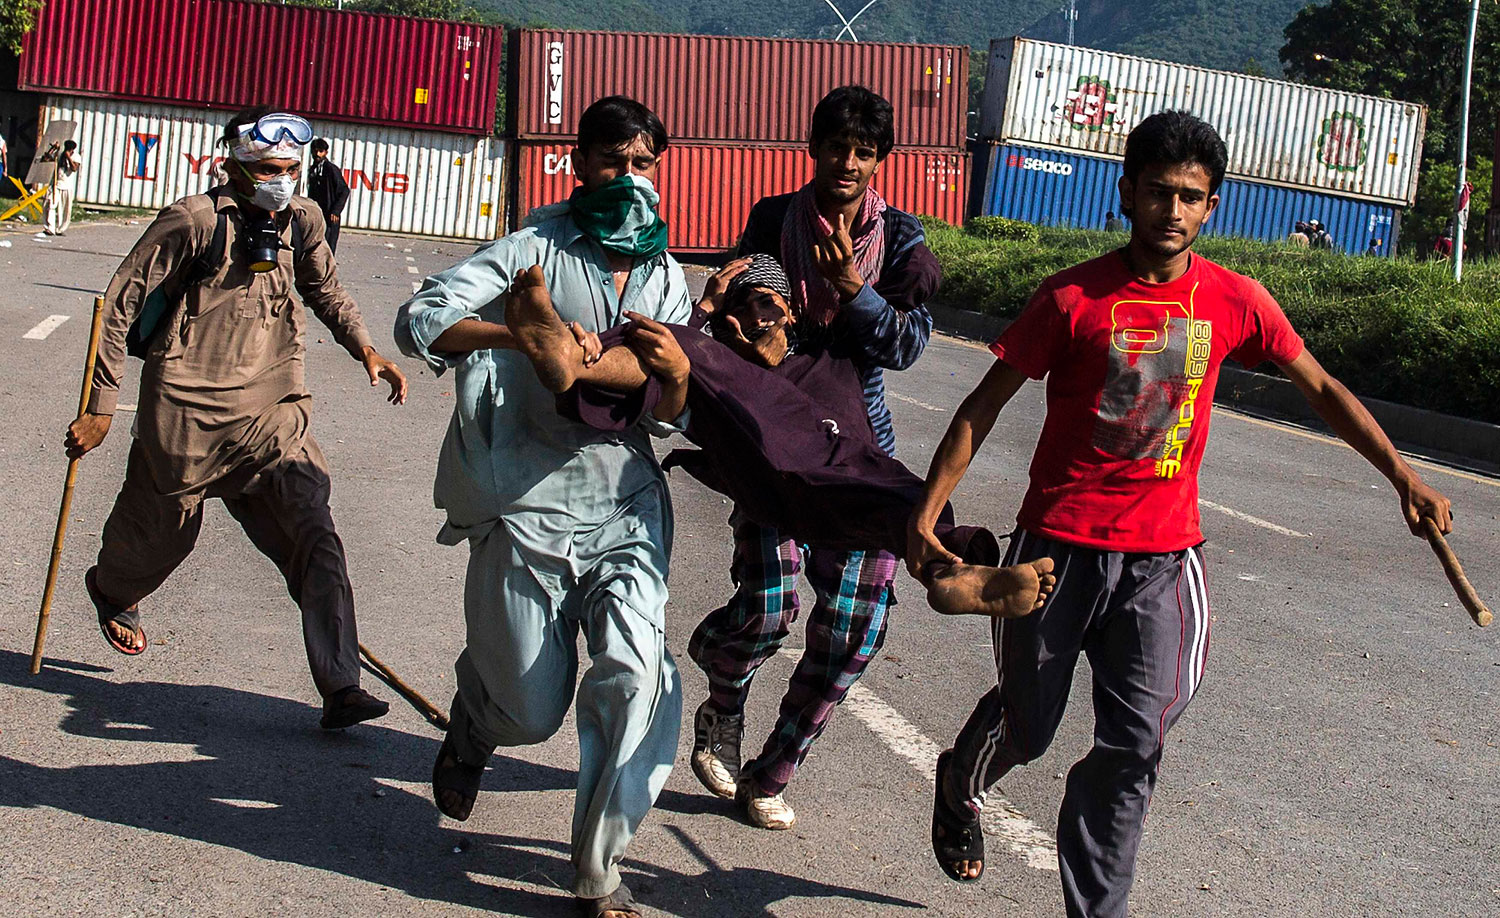 Supporters of Tahir ul-Qadri, Sufi cleric and leader of political party Pakistan Awami Tehreek (PAT), carry an injured fellow protester during the Revolution March in Islamabad, Aug. 31, 2014.